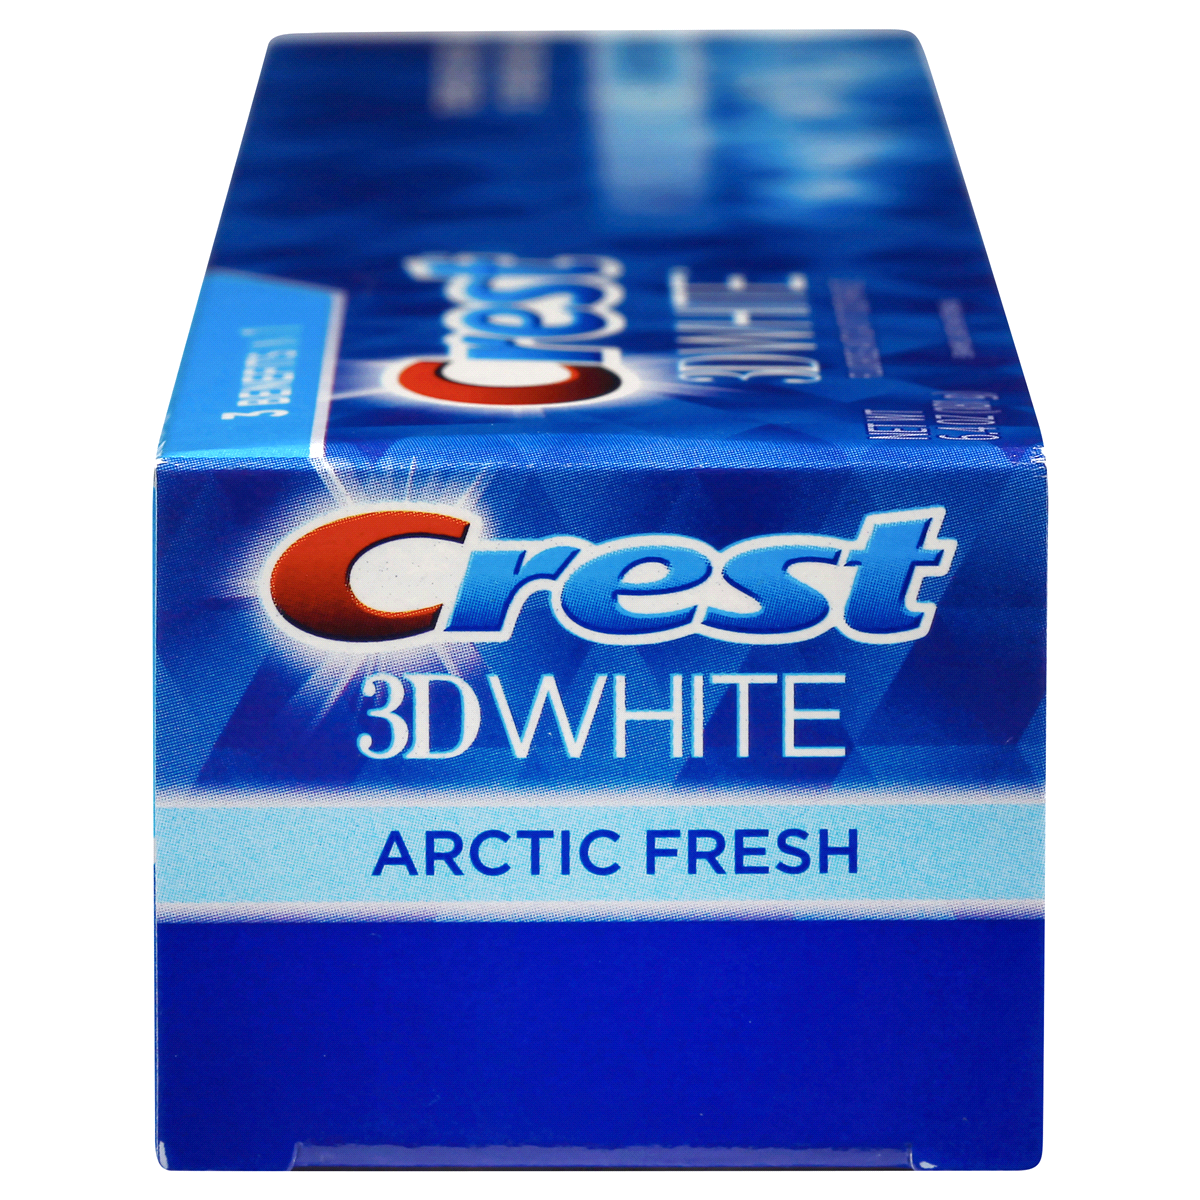 slide 6 of 6, Crest 3D White Arctic Fresh Whitening Toothpaste - Icy Cool Mint,